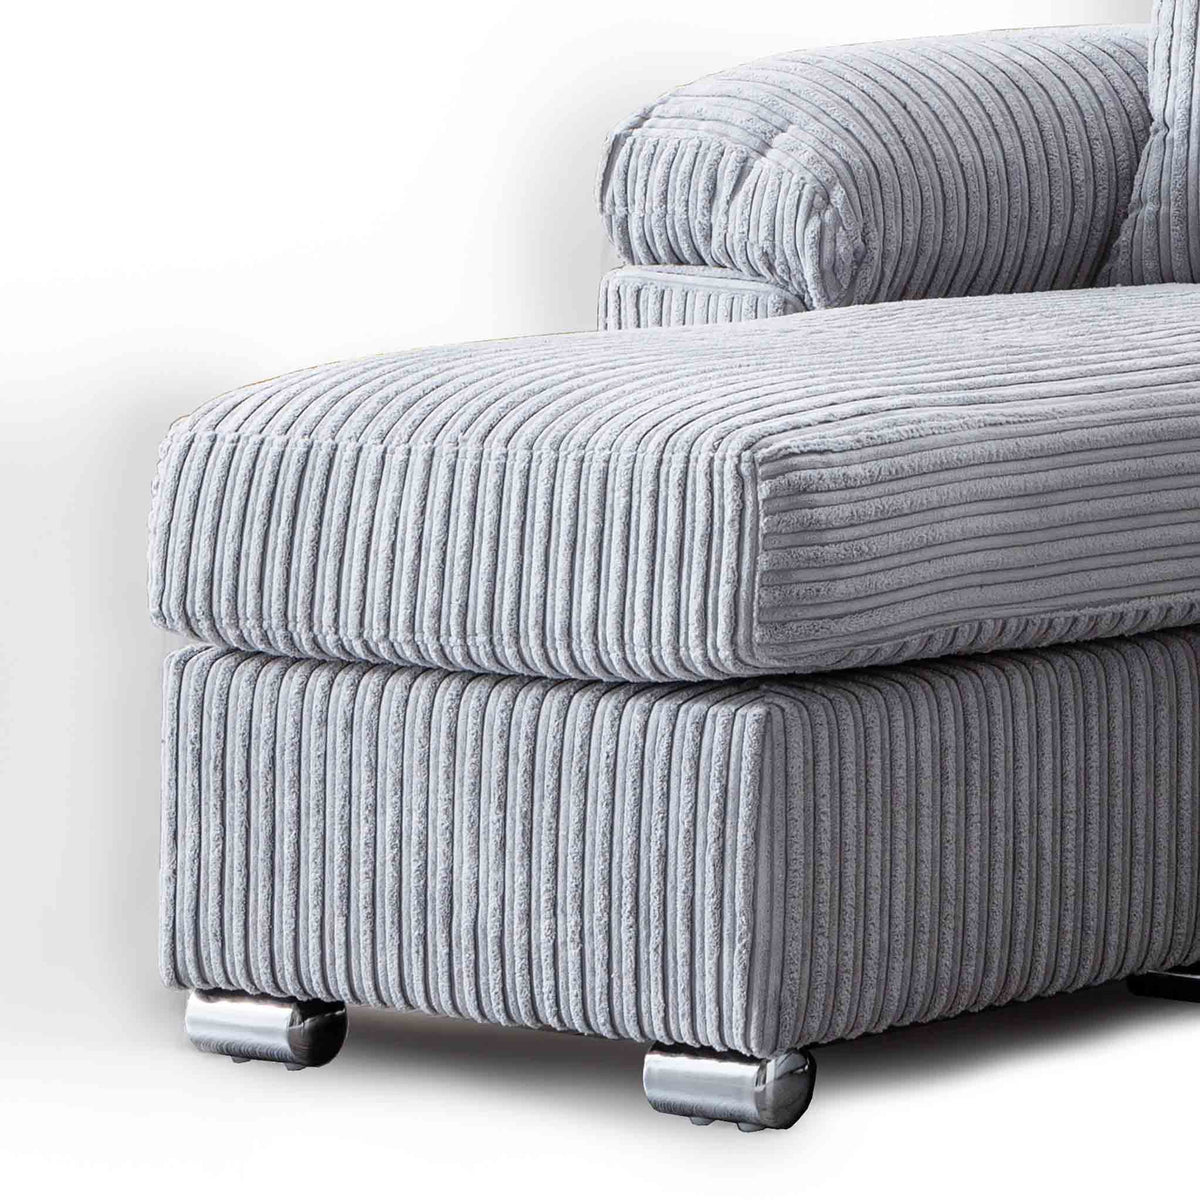 close up of the featured footstool and chaise cushion on the Amalfi Silver Corner Chaise Fabric Sofa